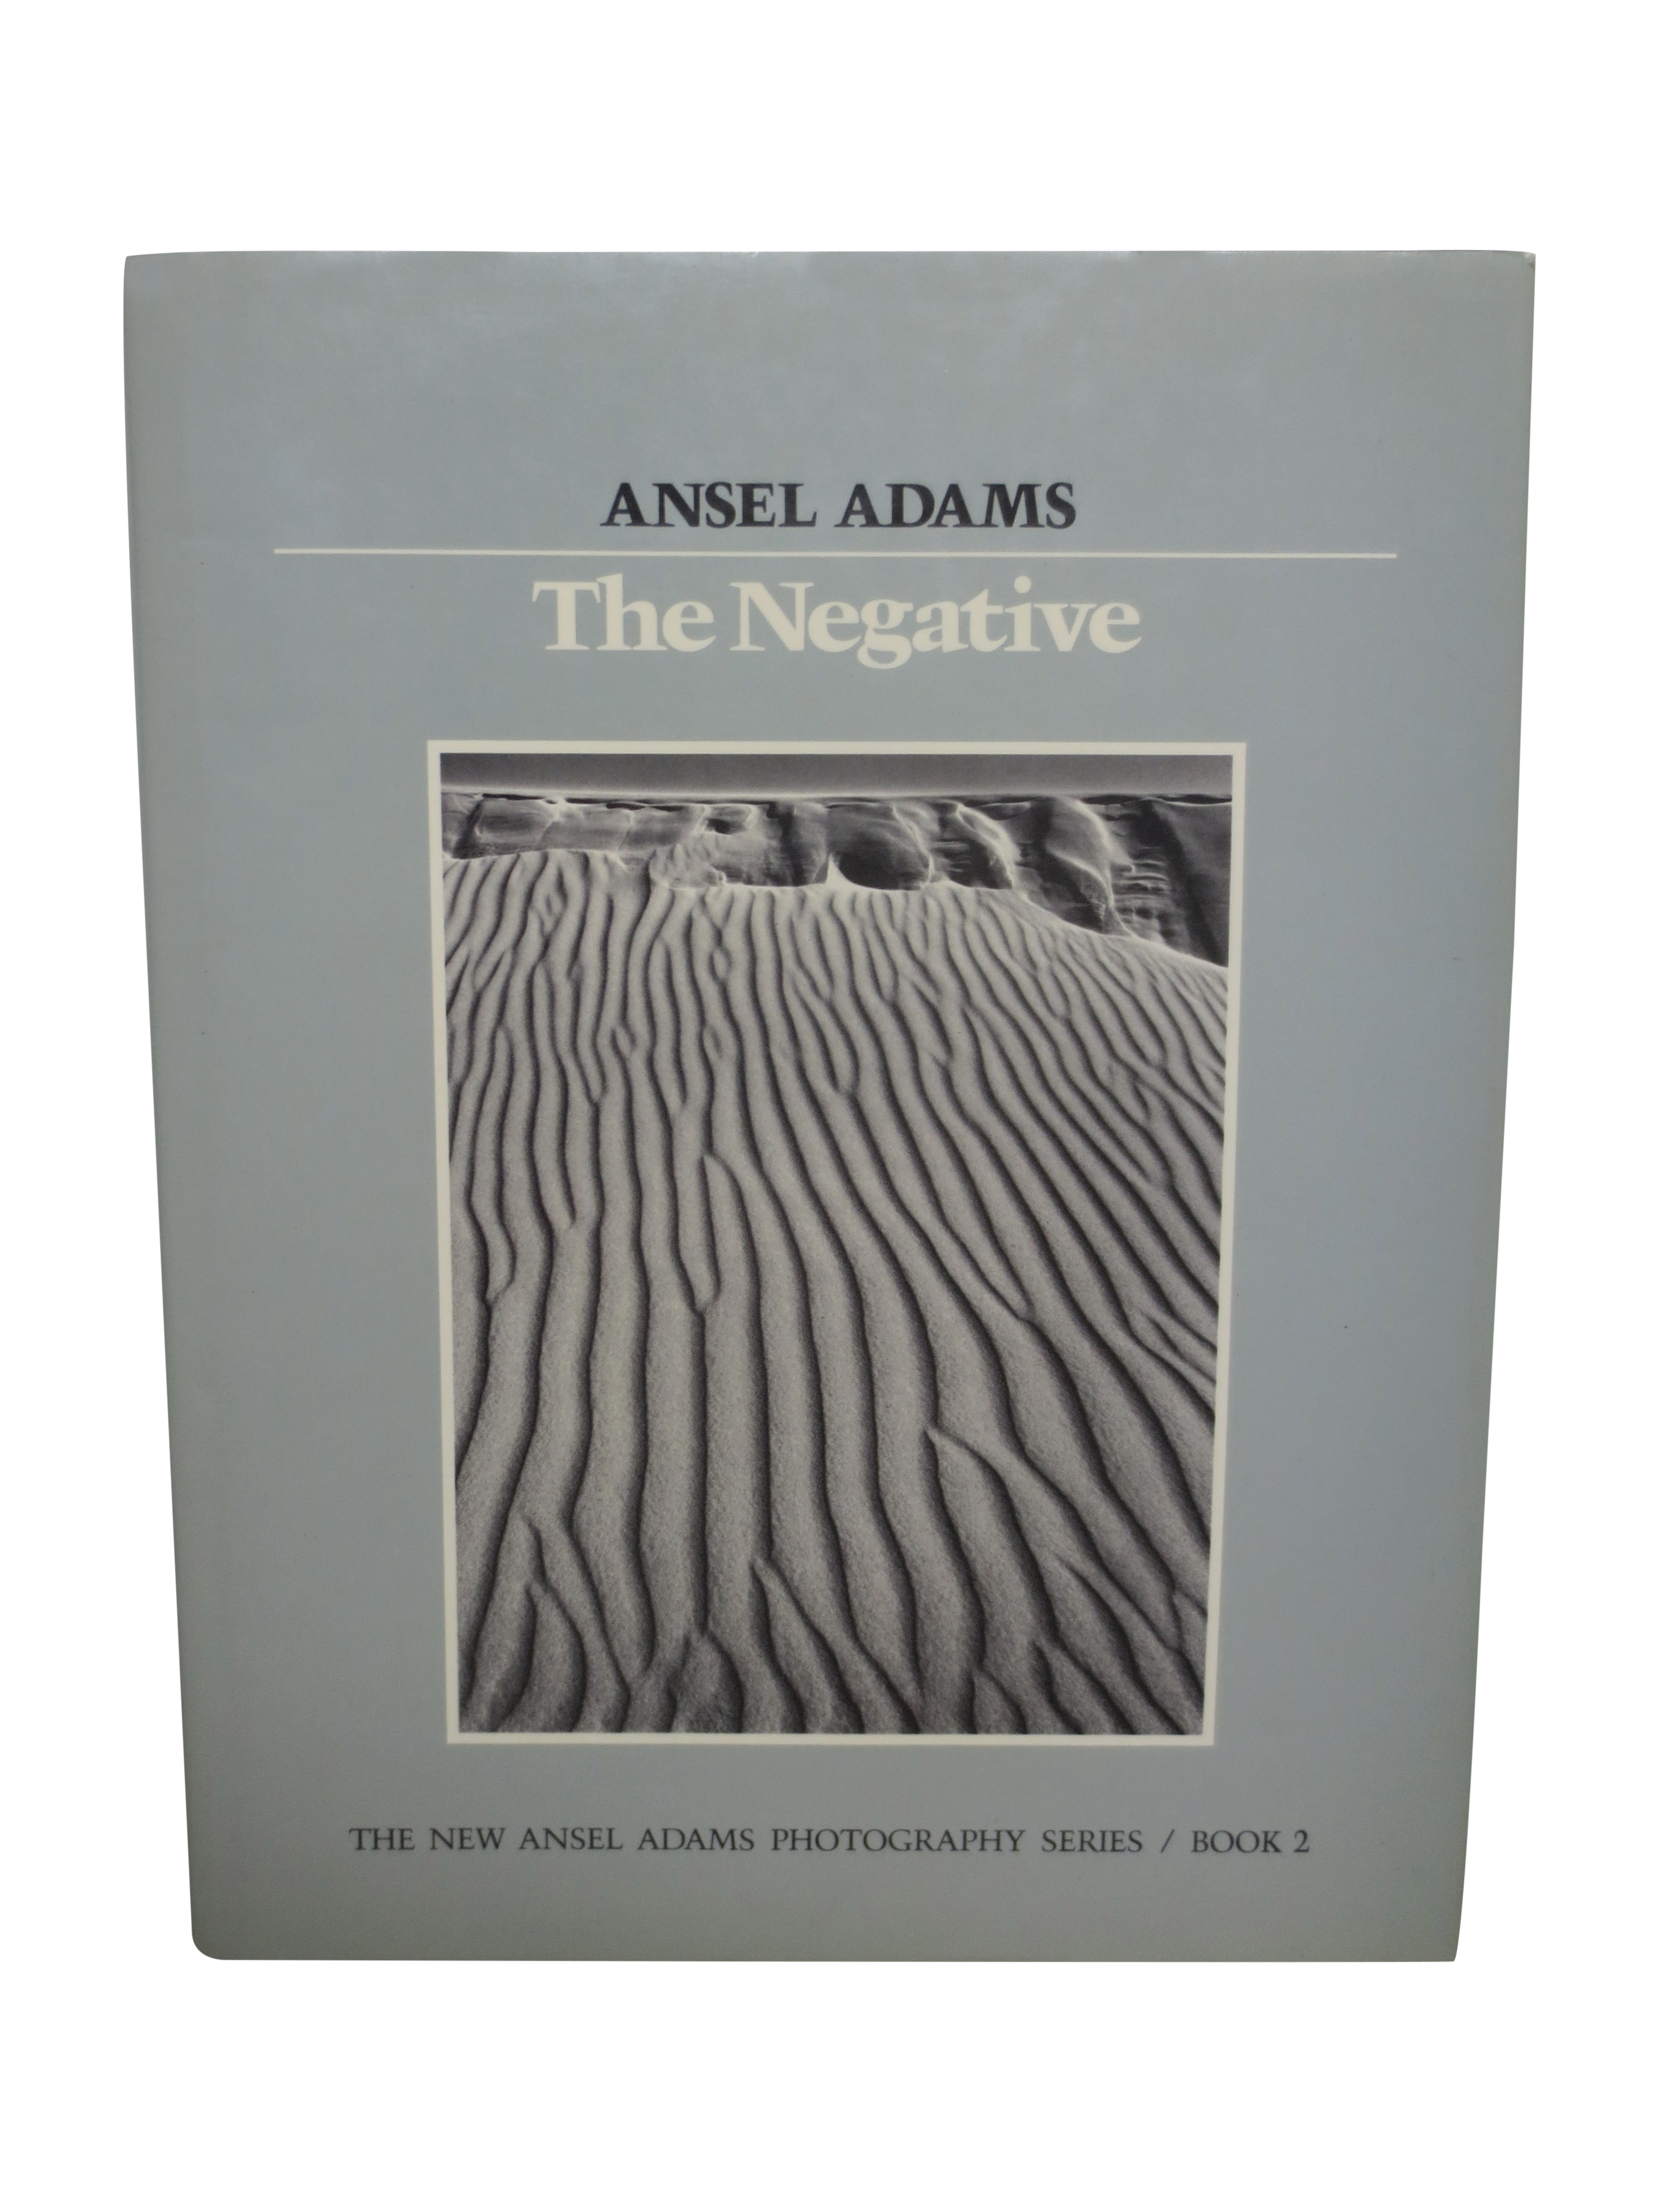 The Negative by Ansel Adams First Edition